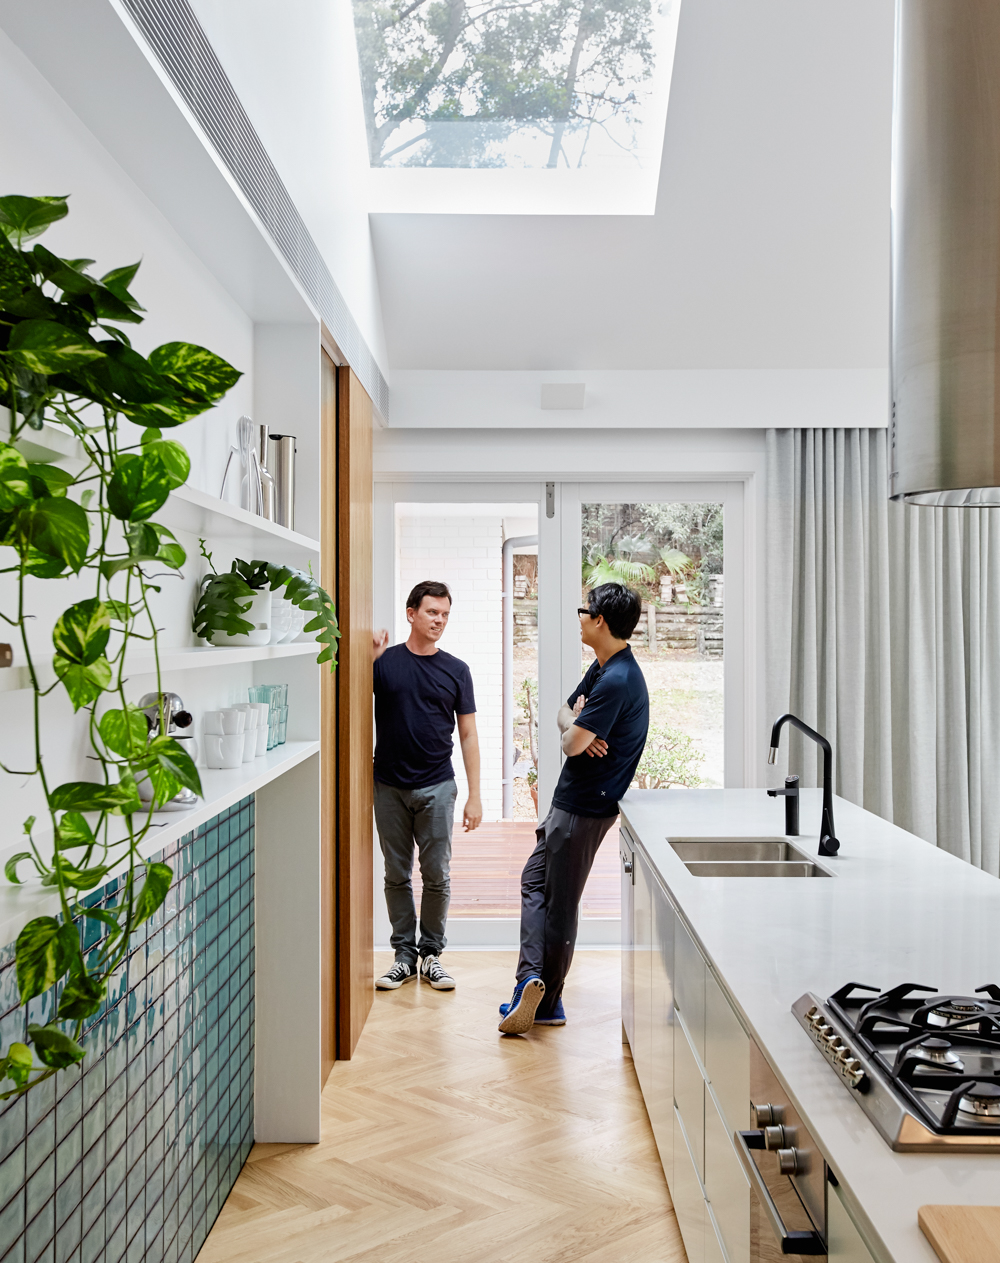 Looking down kitchen with two people talking with skylight above